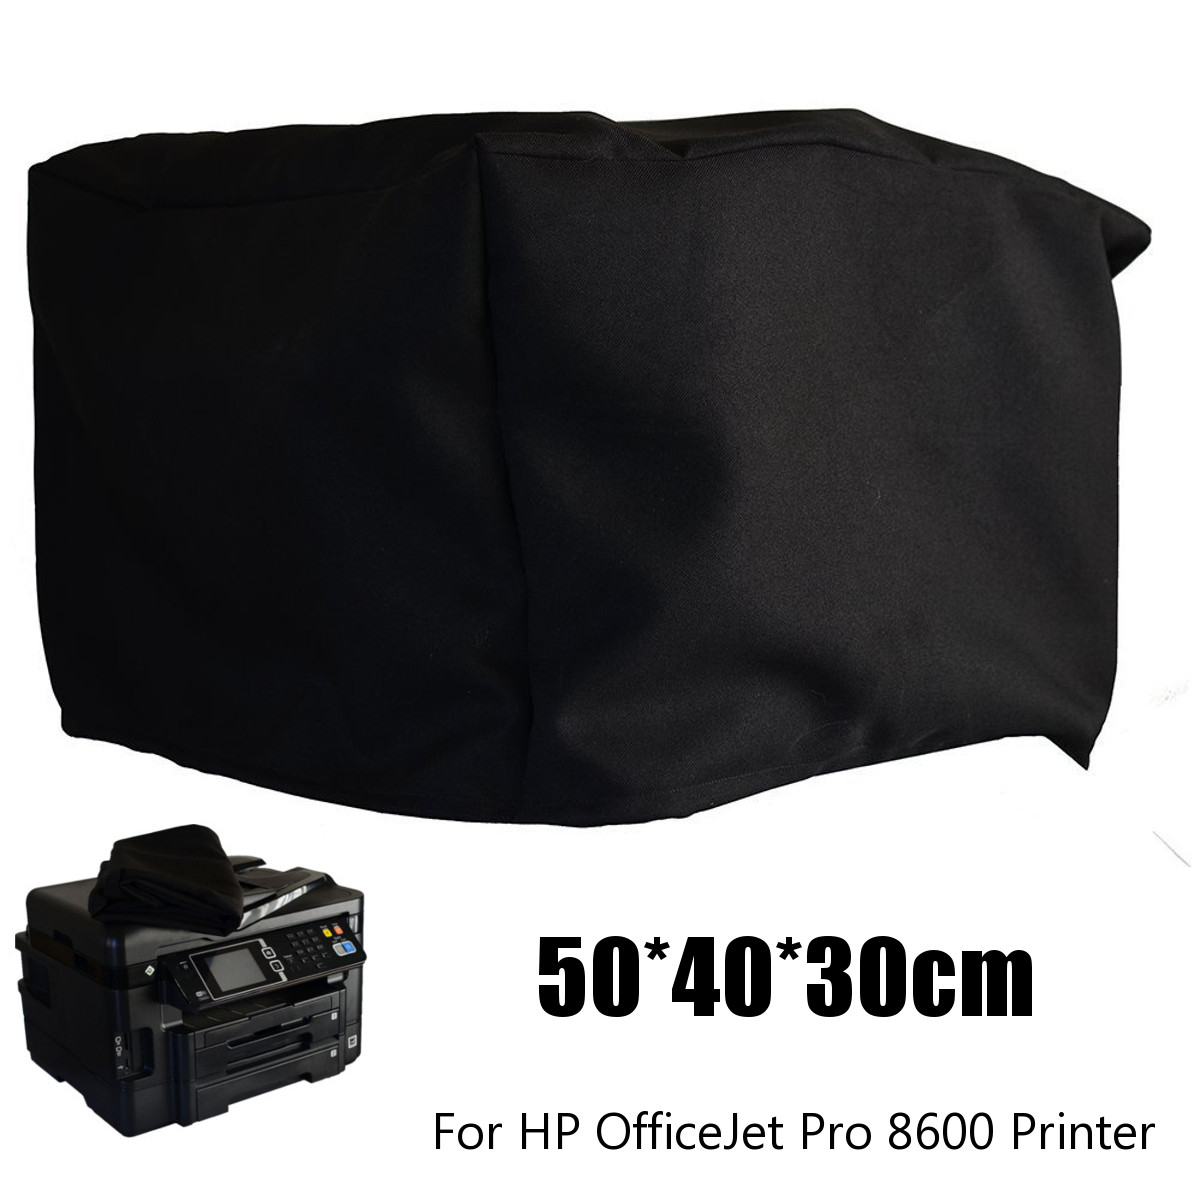 Protector Table-Cloth Chair Printer Nylon Officejet Dust for HP 50x40x30cm title=